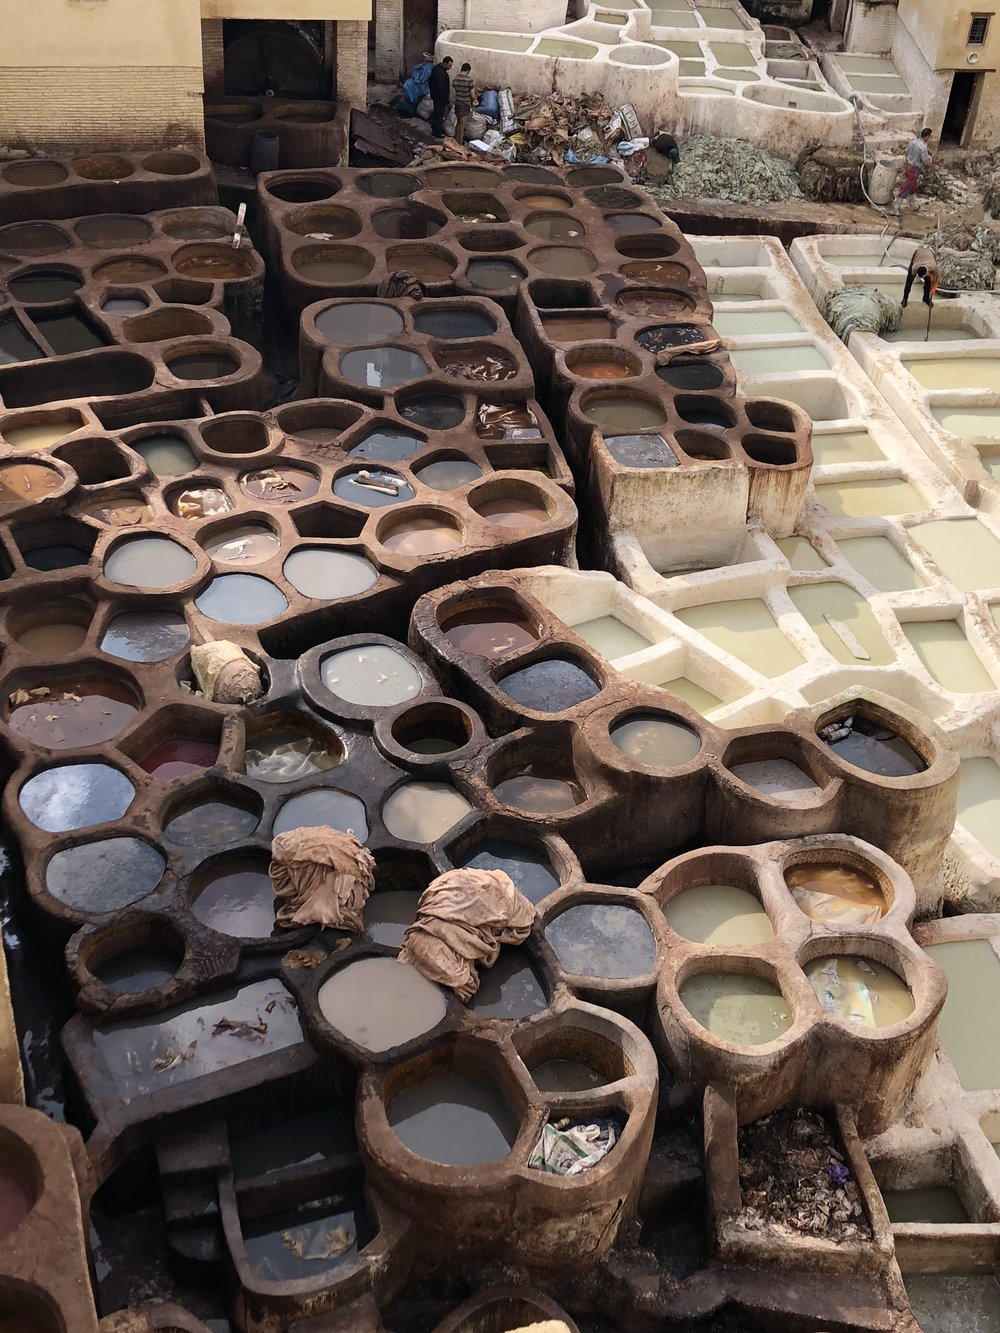 Acrid-smelling dye vats of the leather tanneries.